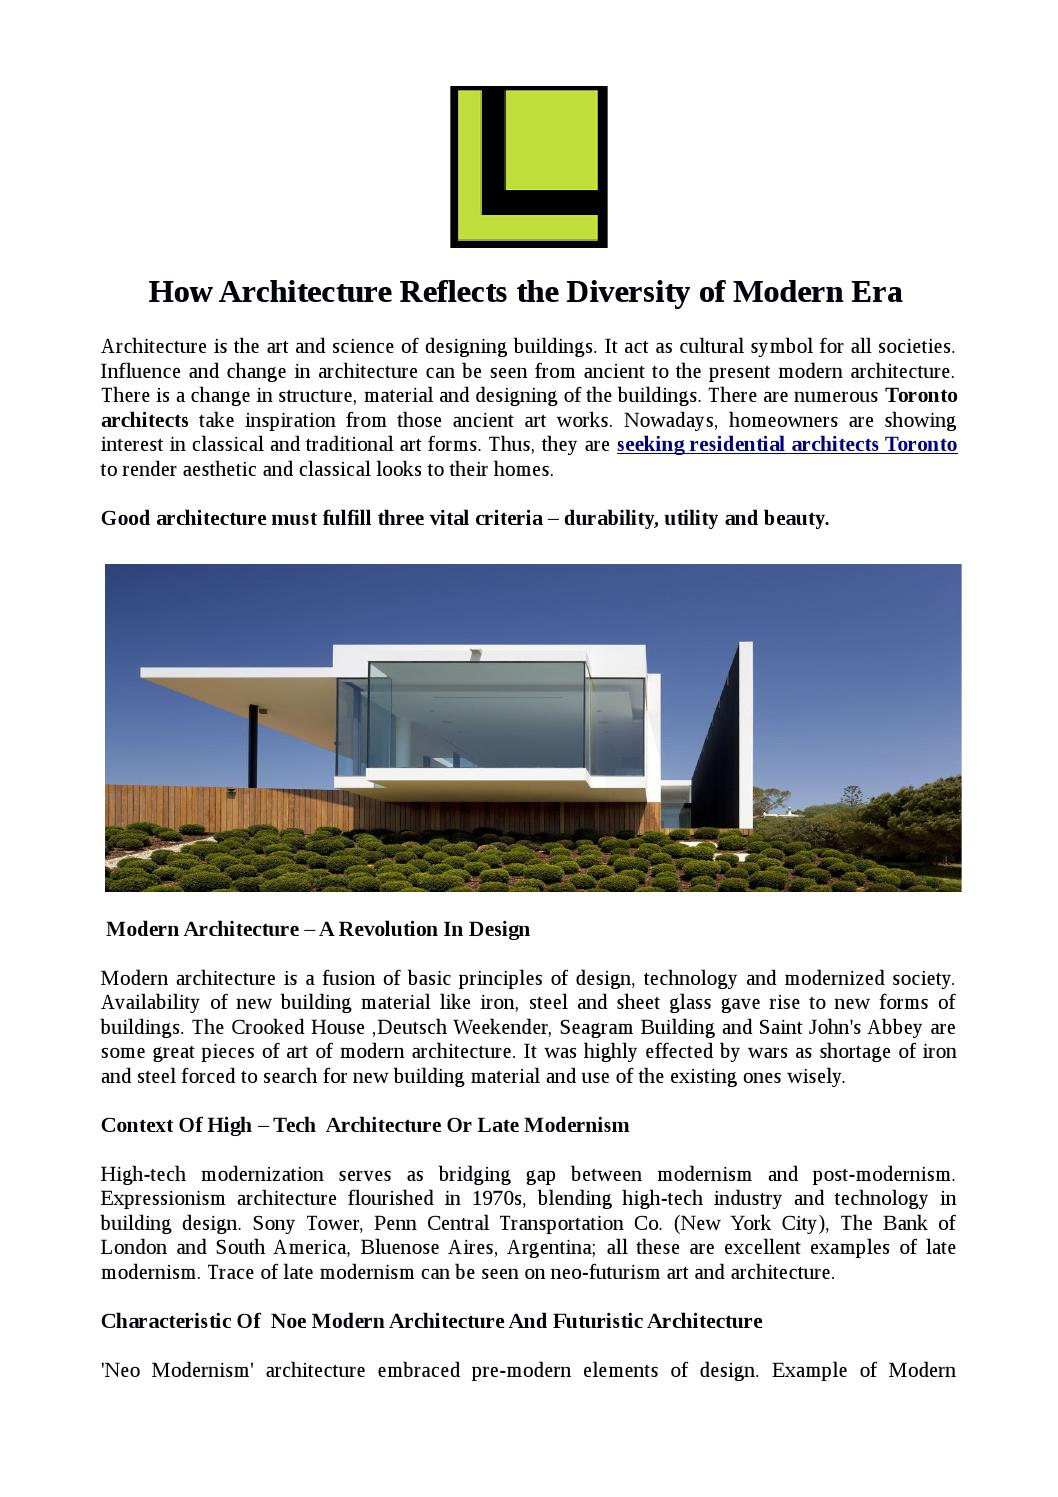 Toronto Architects Www Lindyconsulting Com By Lindy Consulting Issuu